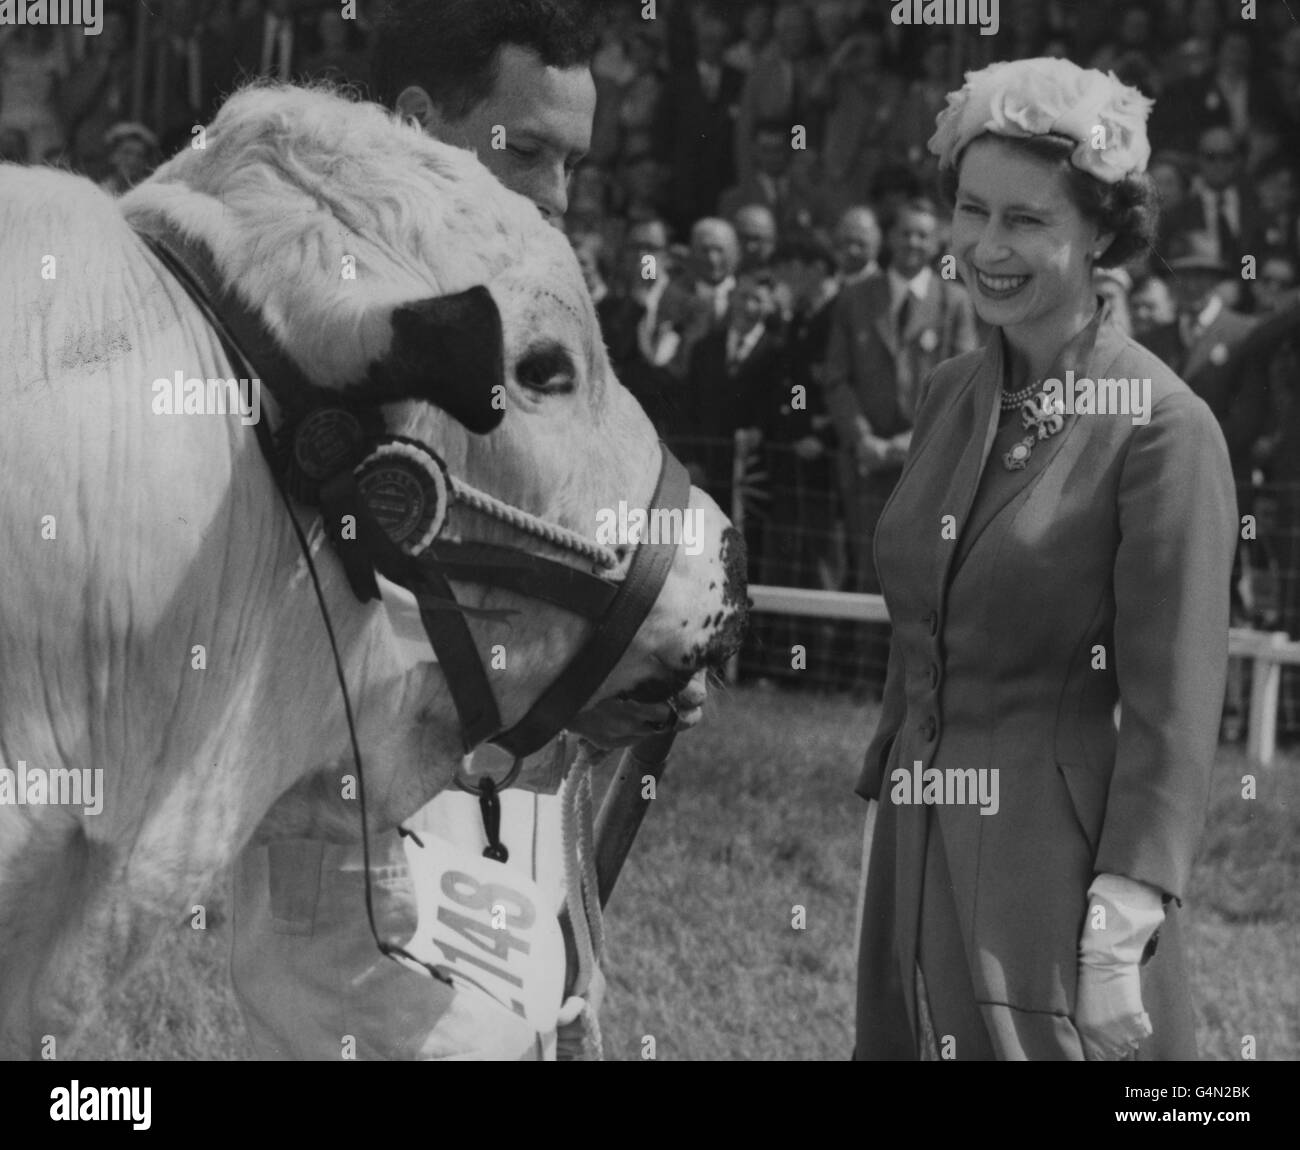 Royalty - Royal Agricultural Show - Norwich - Stock Image